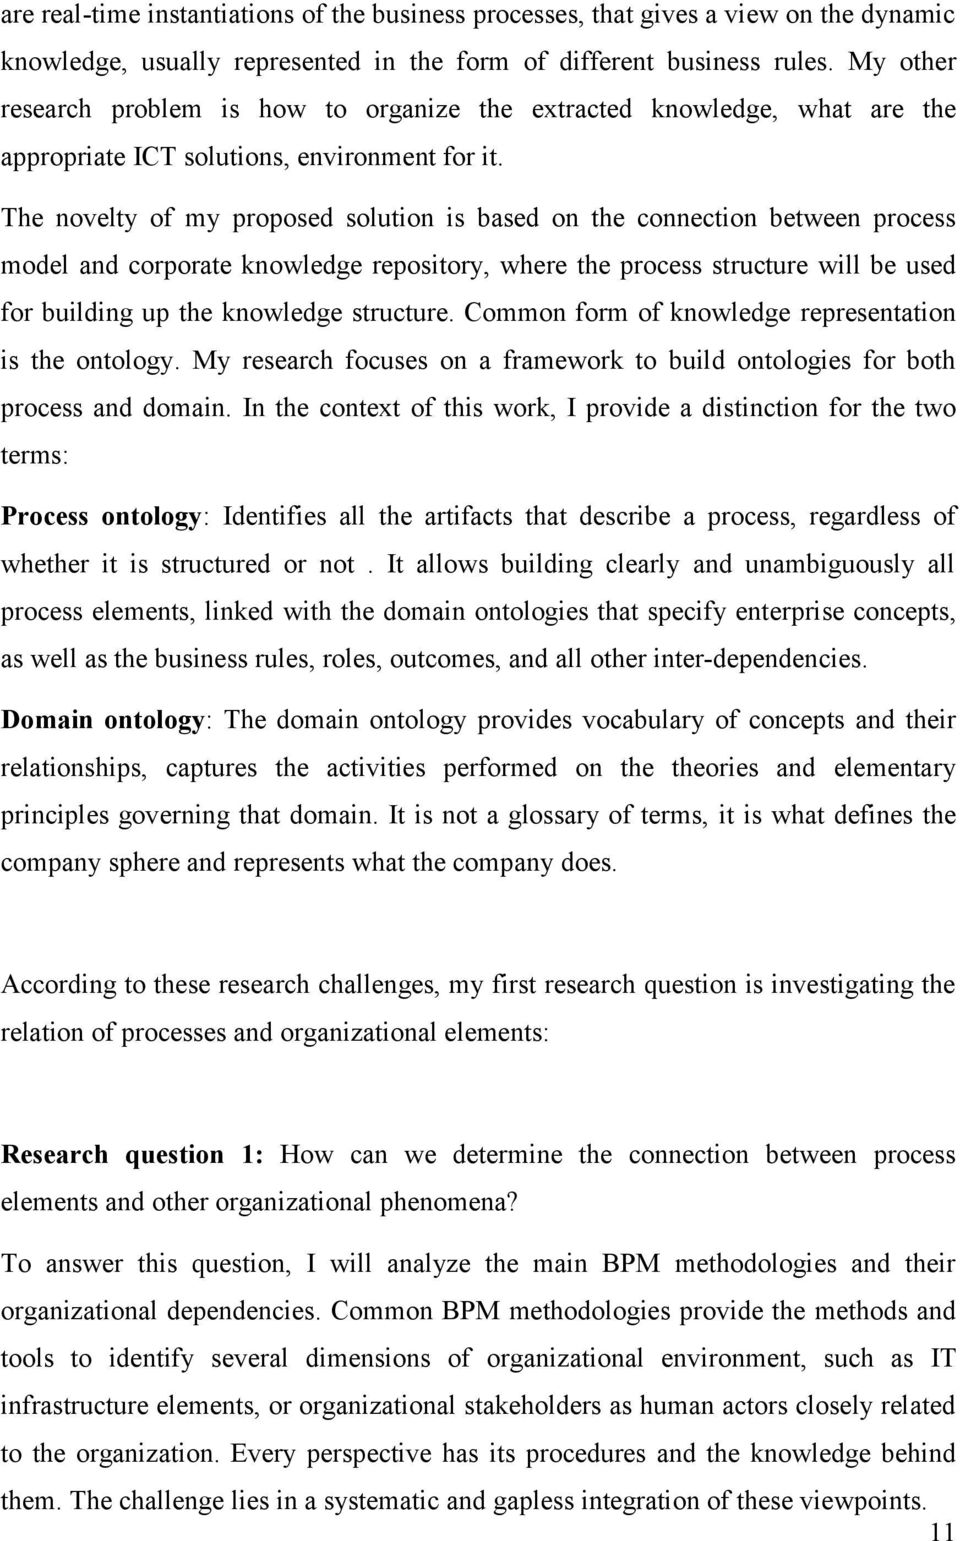 The novelty of my proposed solution is based on the connection between process model and corporate knowledge repository, where the process structure will be used for building up the knowledge